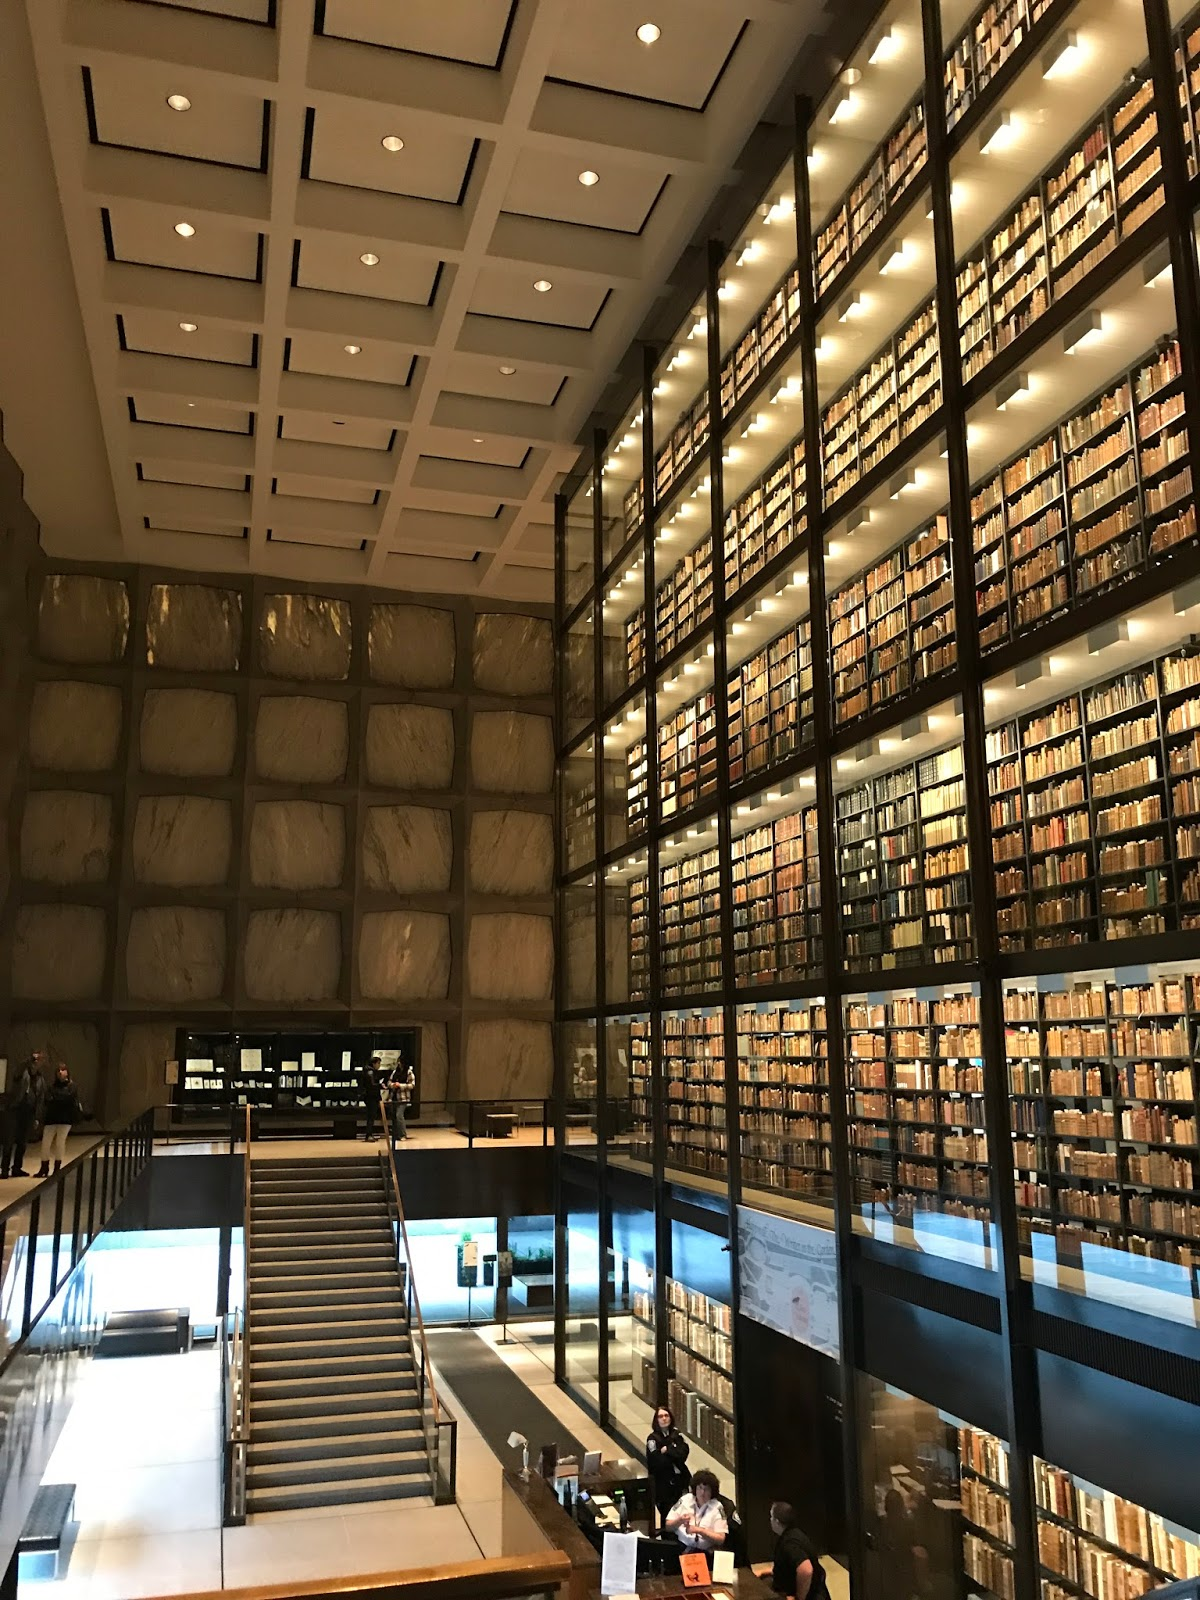 New Haven - Beinecke Rare Book & Manuscript Library